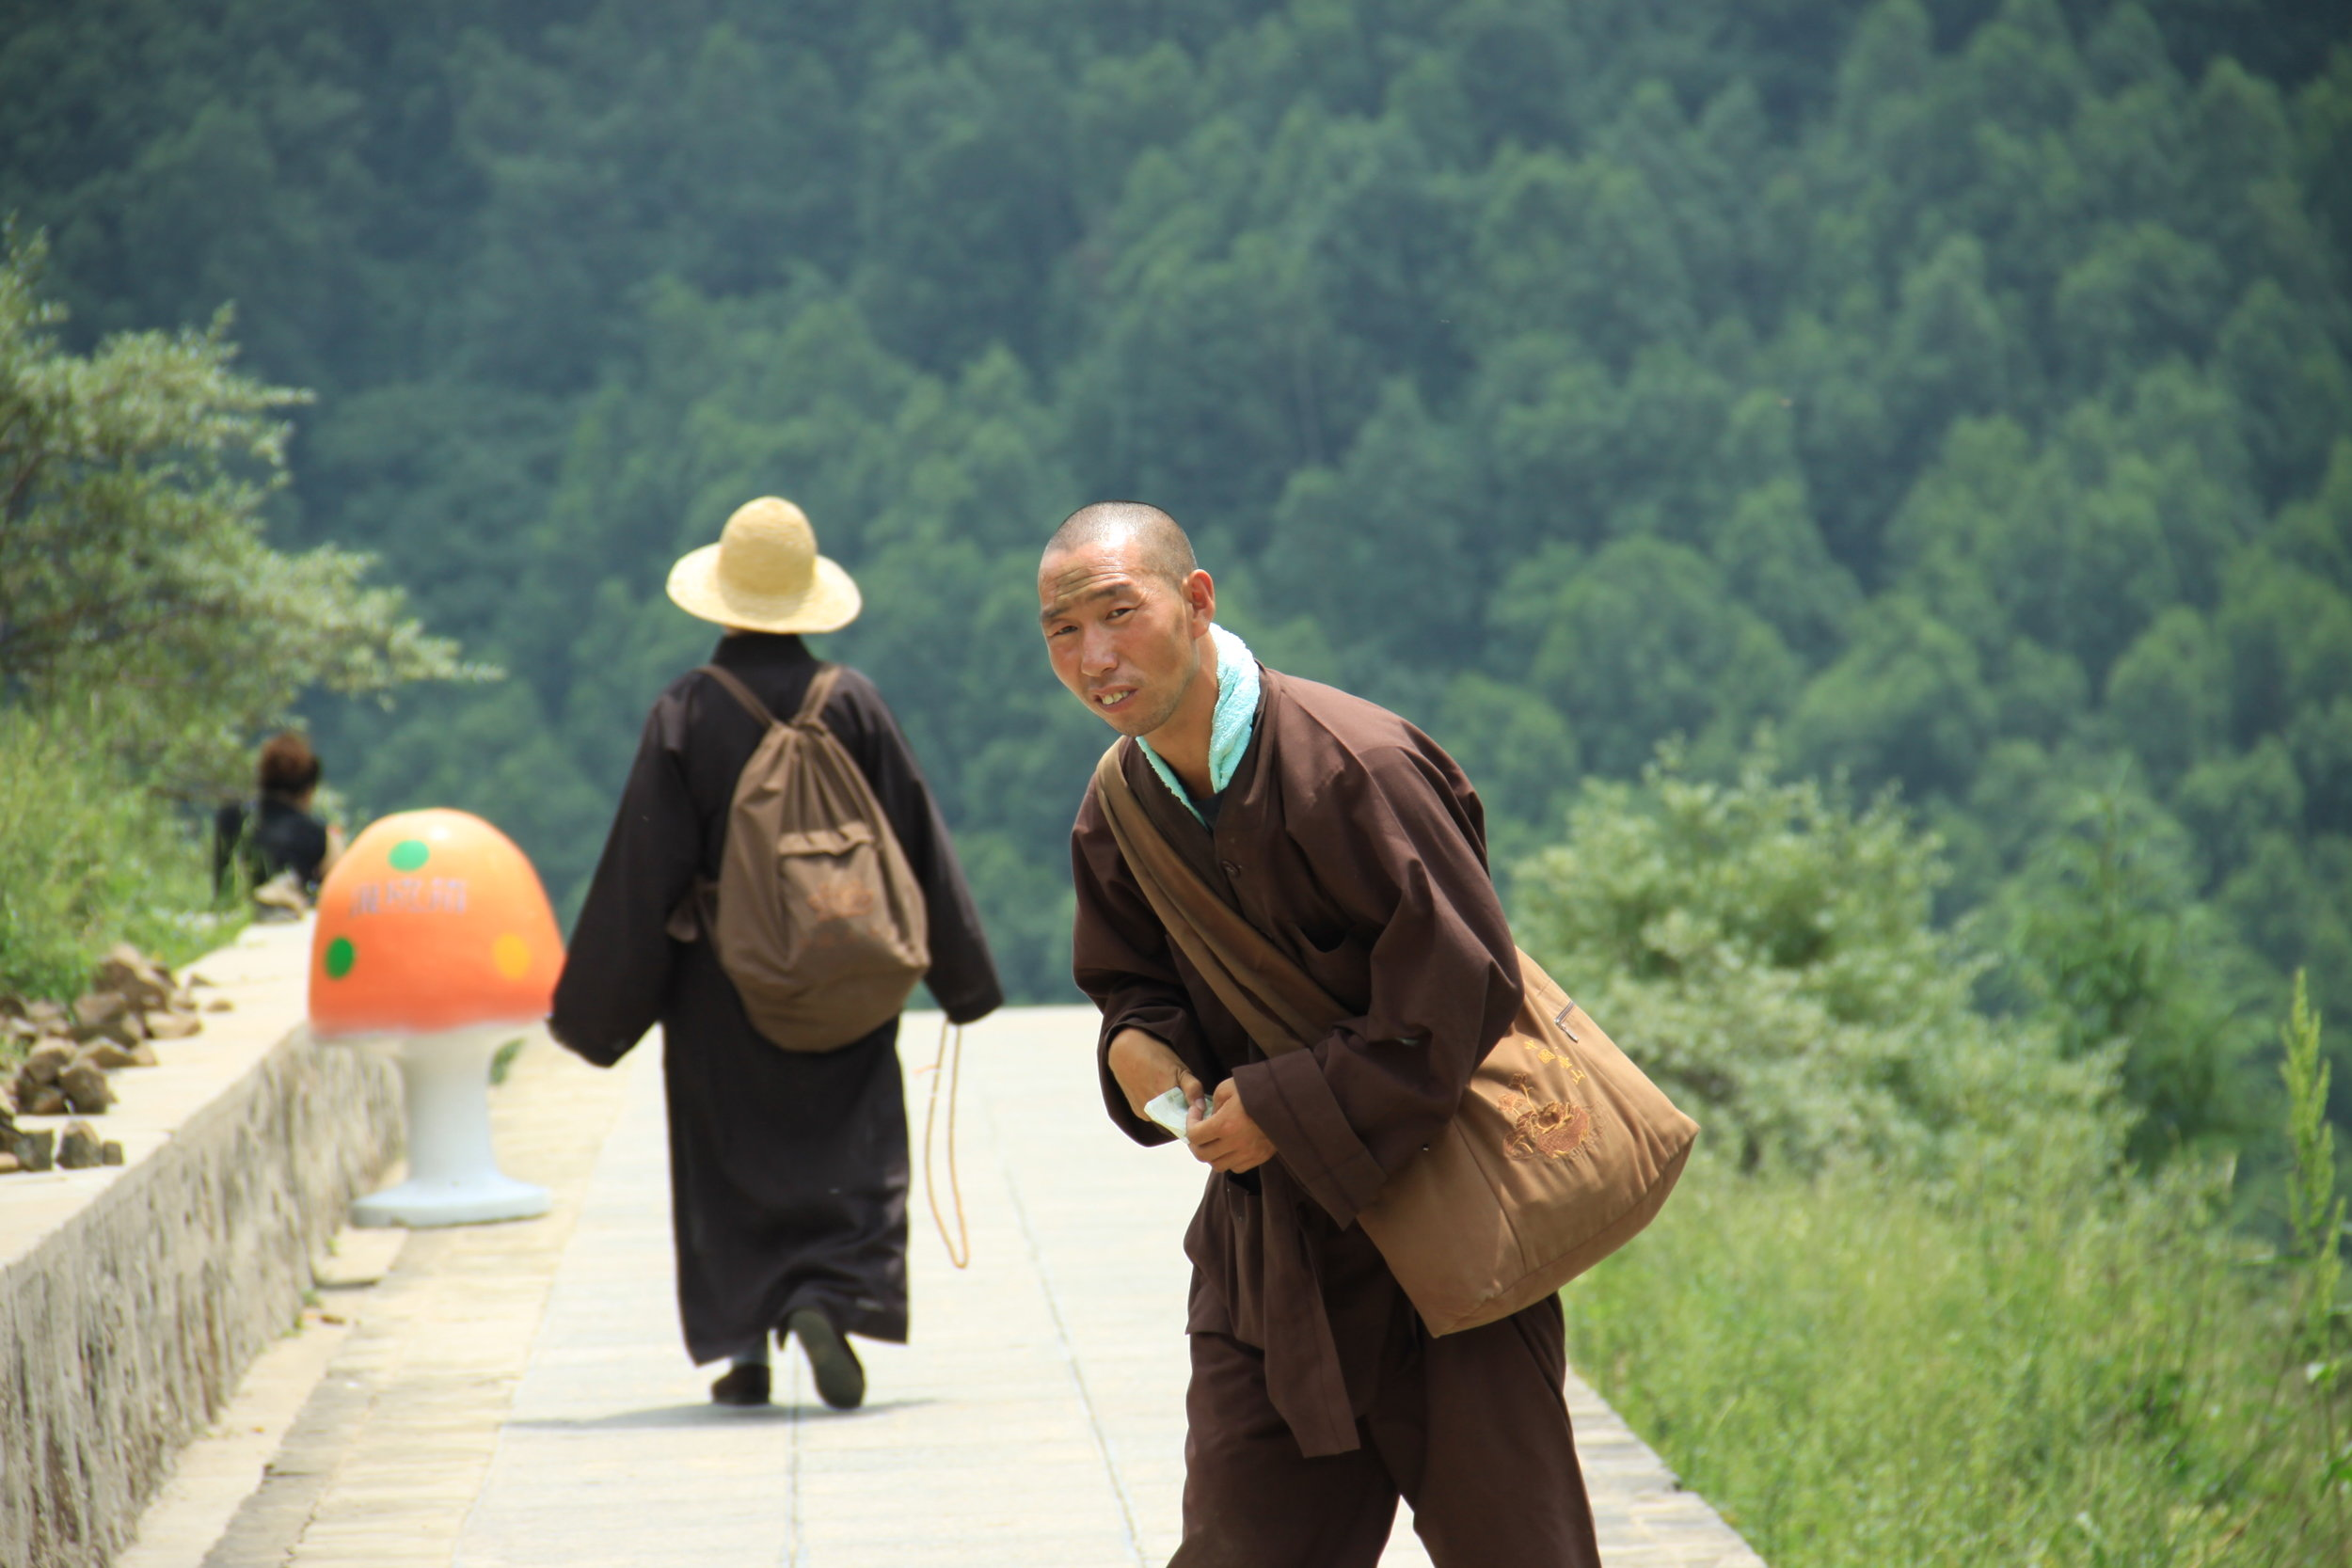 Monk who gave us directions on our way to a temple